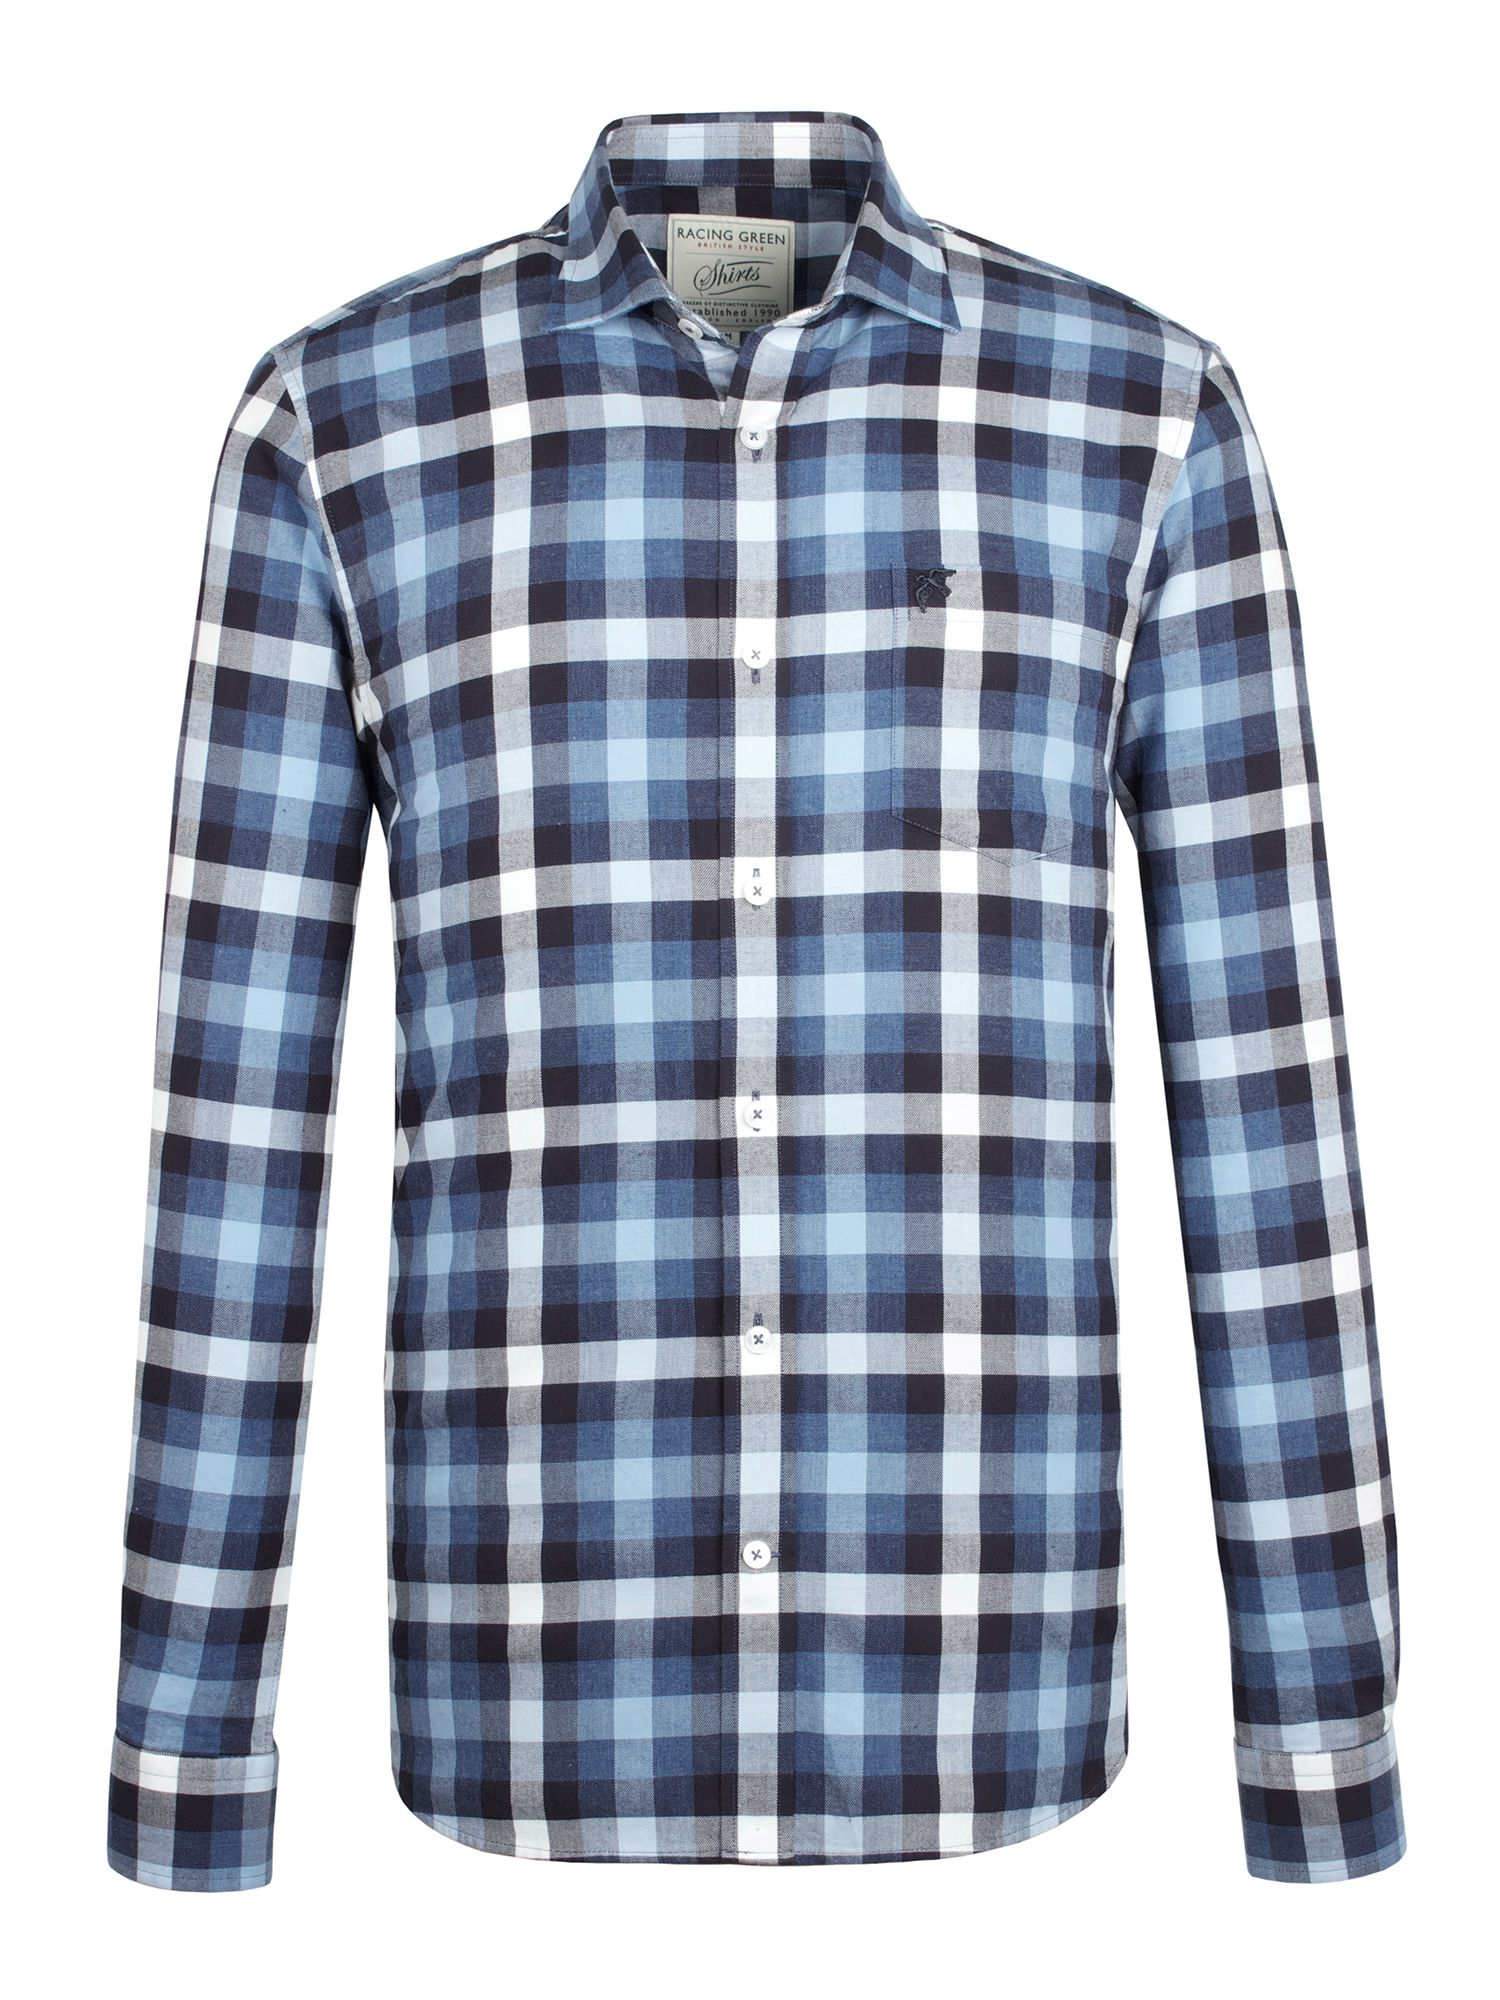 Racing Green Brushed Twill Multi Check Shirt In Blue For